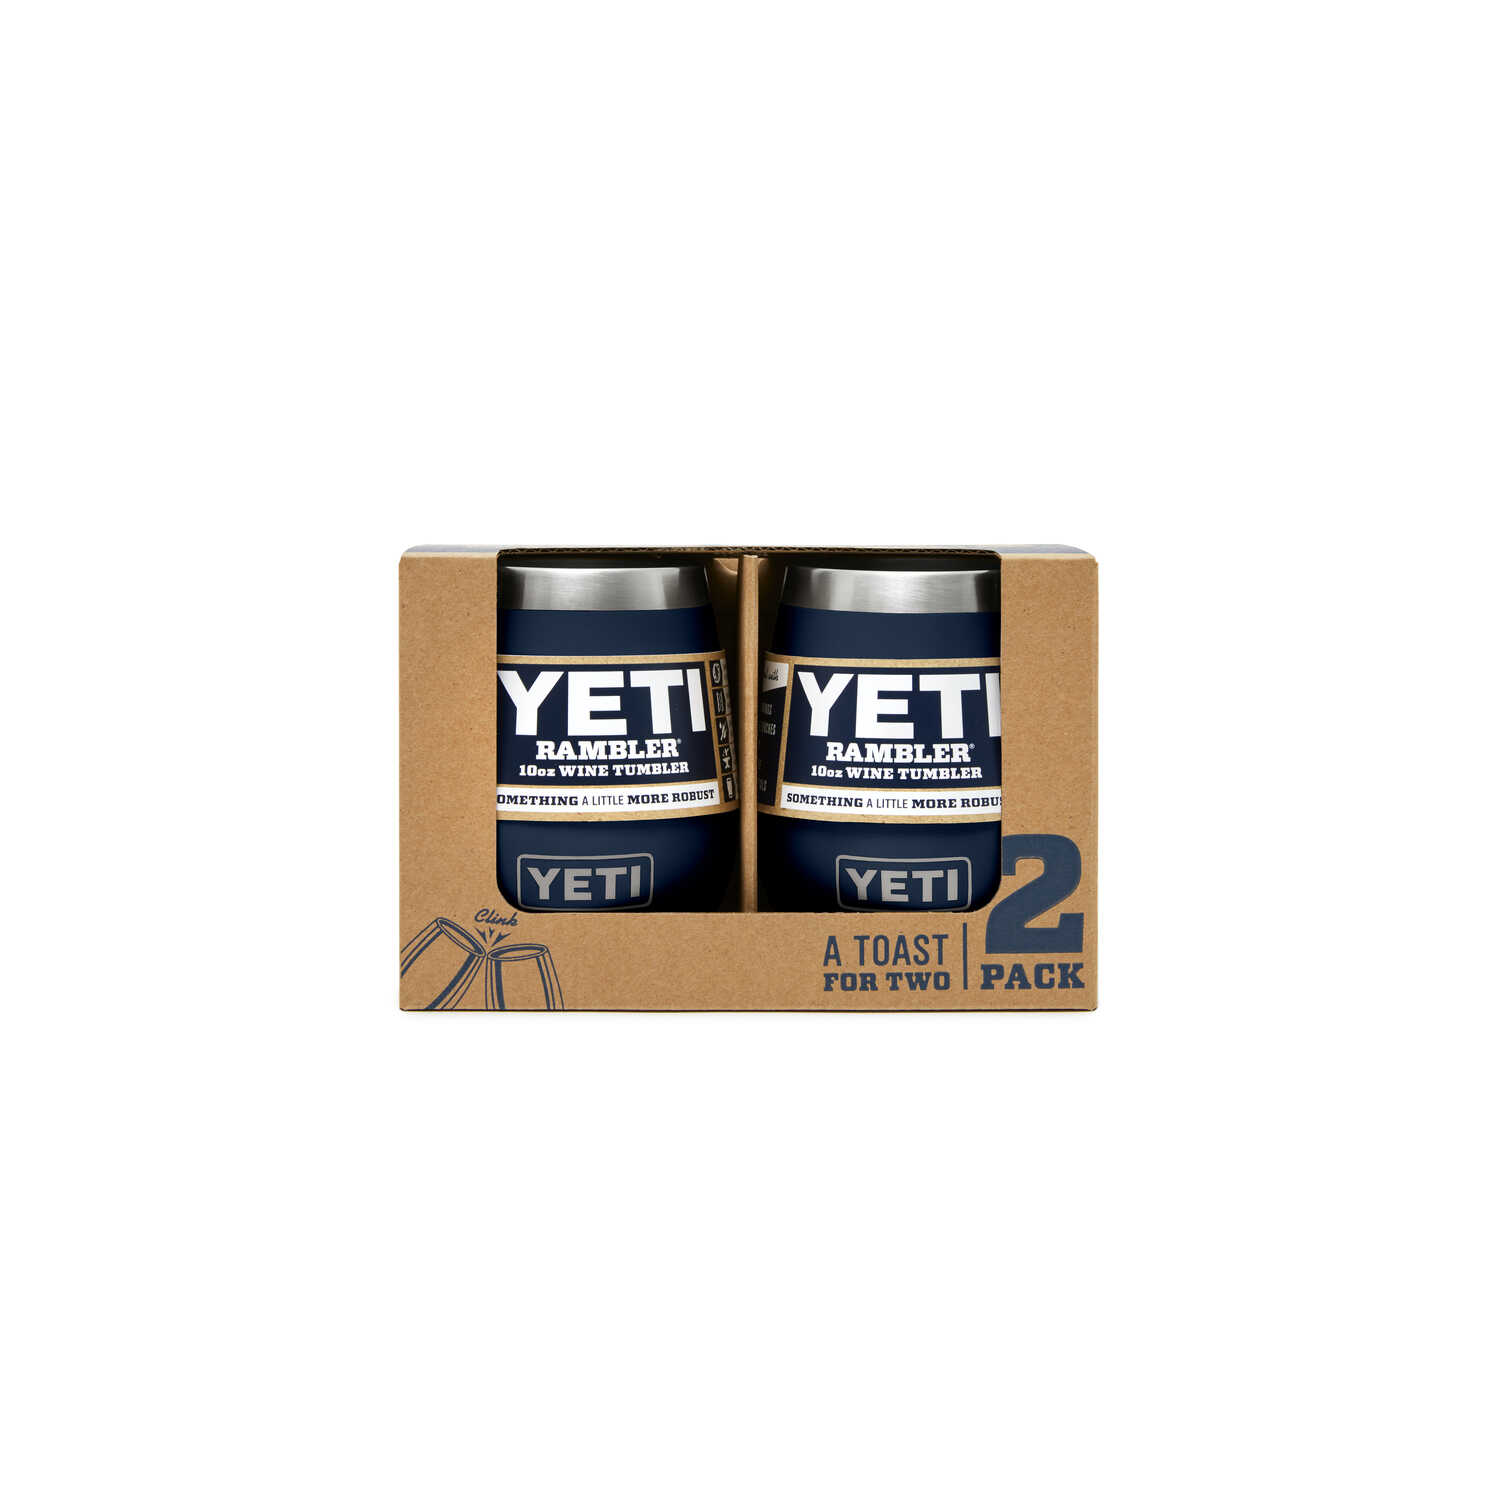 YETI  Rambler  Navy  Stainless Steel  Stemless Wine Glass  BPA Free 10 oz.